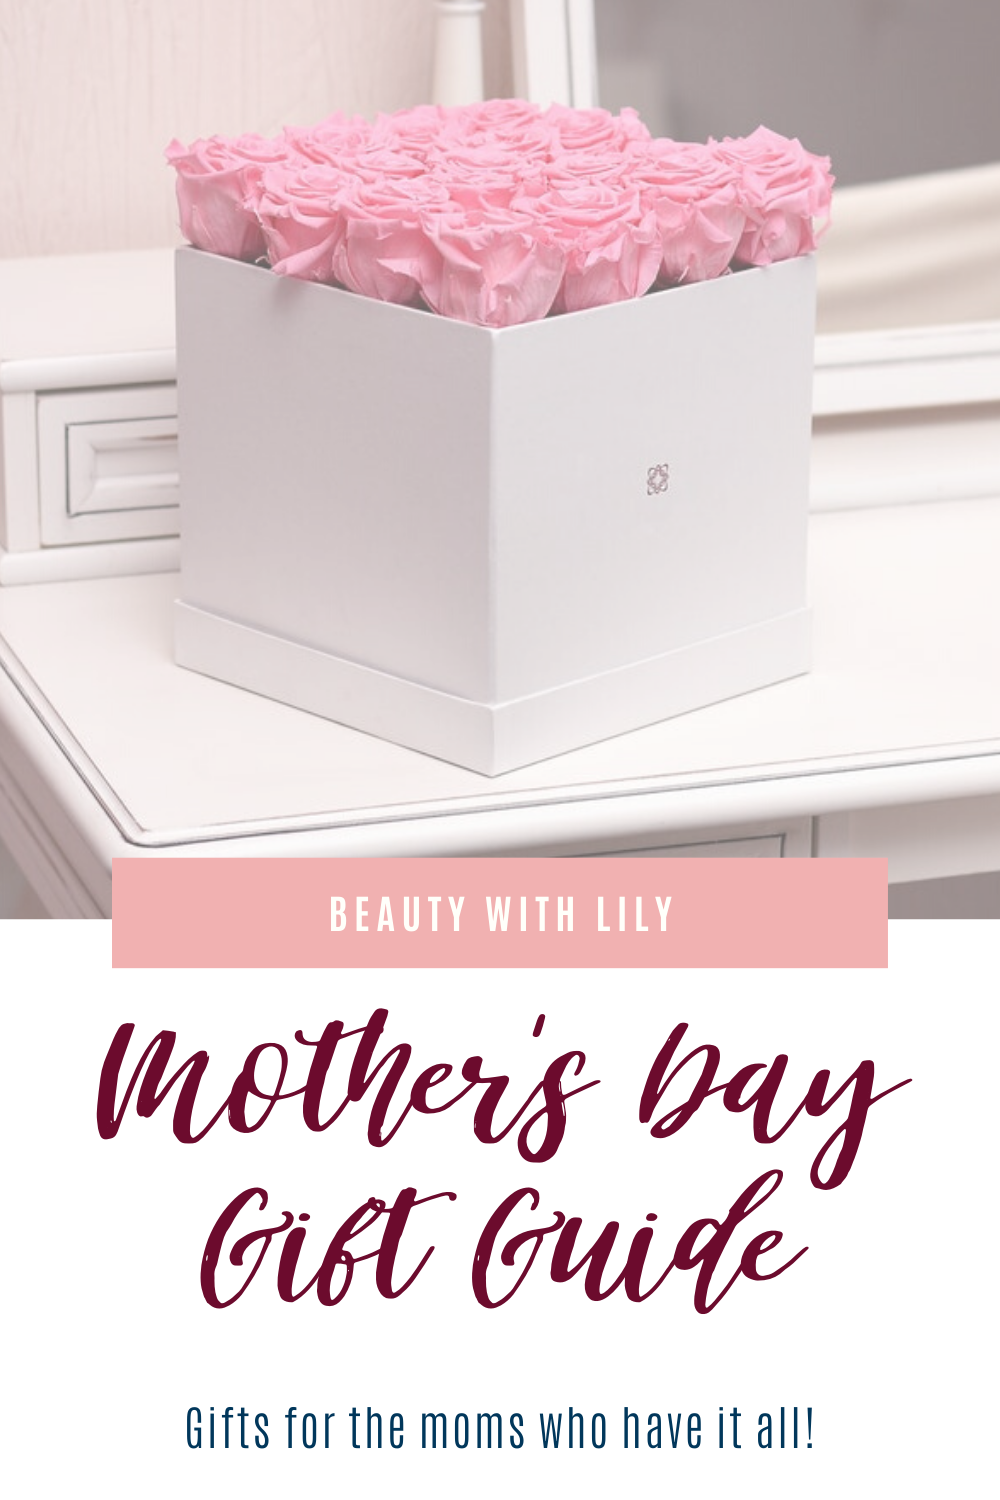 Mother's Day Gift Guide // Mother's Day Gift Ideas // Gift Ideas for Her // Affordable Gift Ideas for Women | Beauty With Lily #giftideas #mothersdaygifts